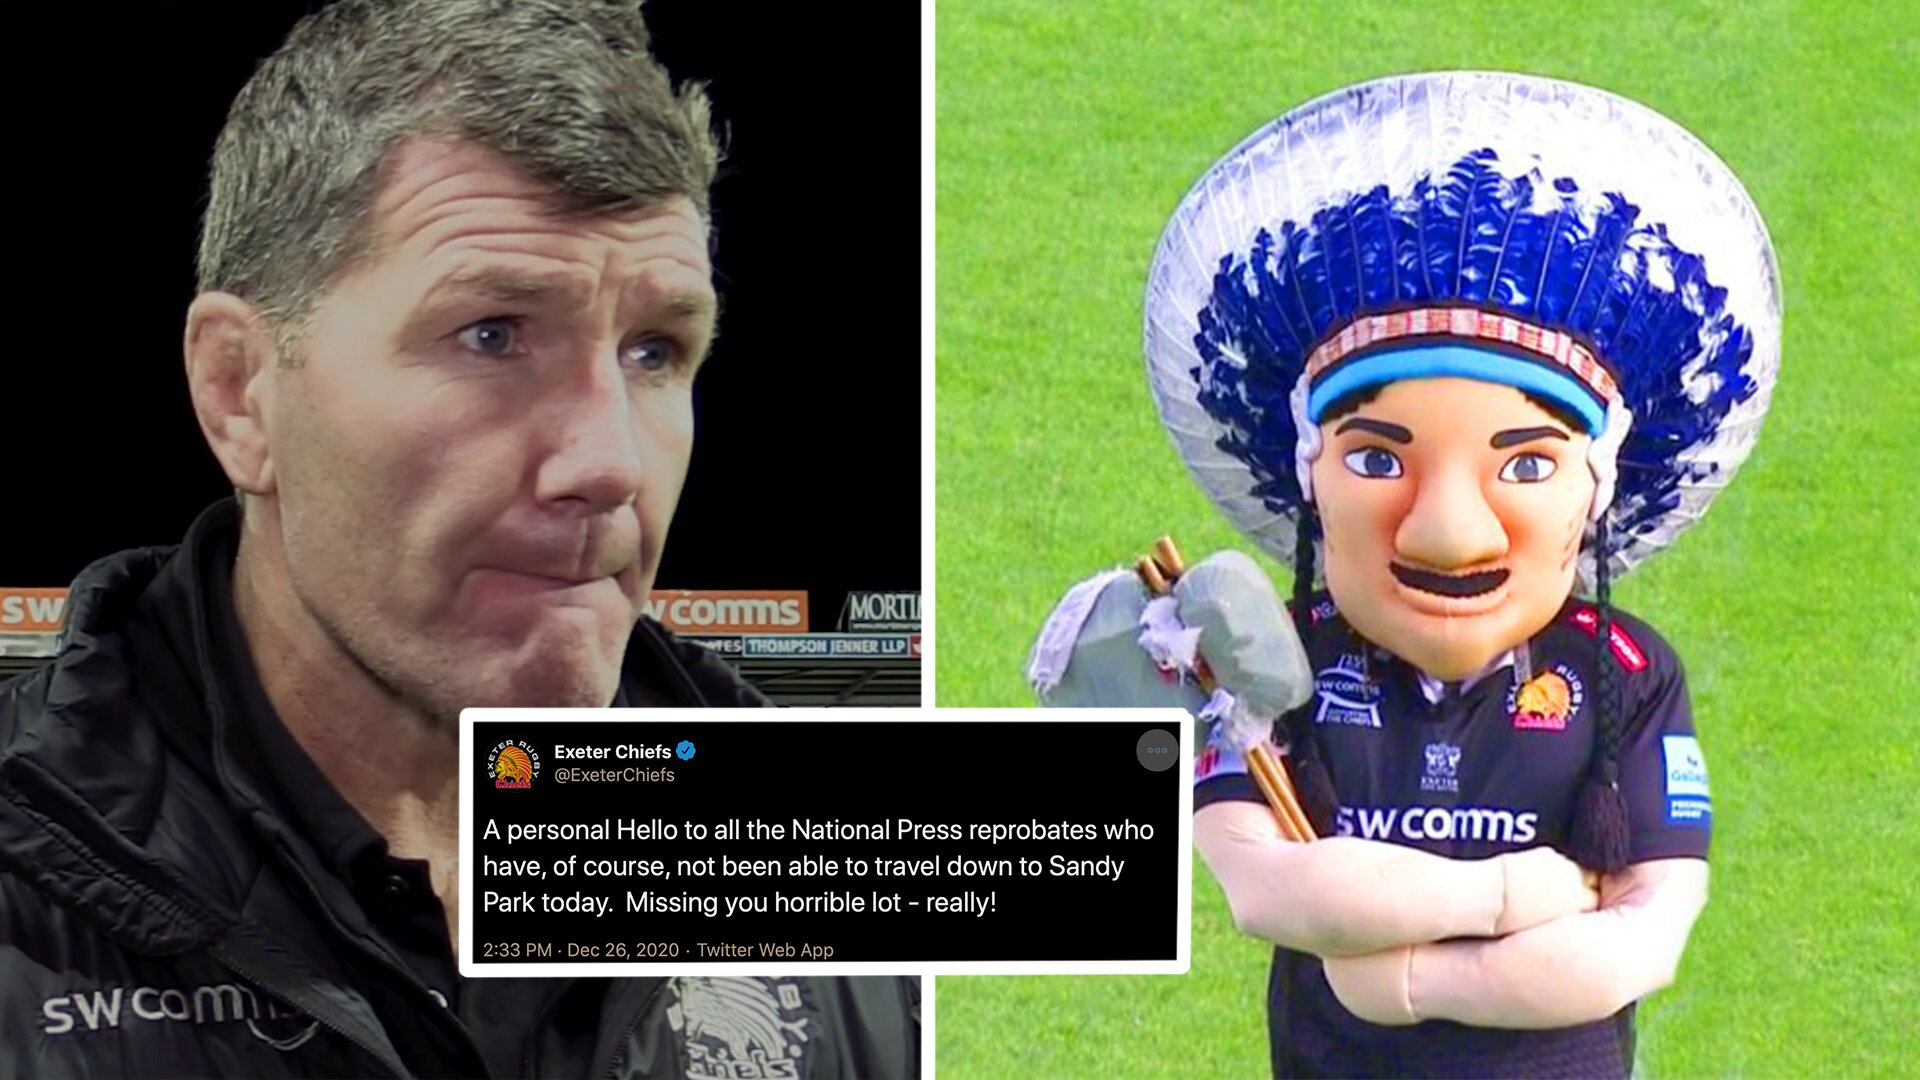 Exeter Chiefs media sends astonishing attack on press as they are banned from Sandy Park stadium